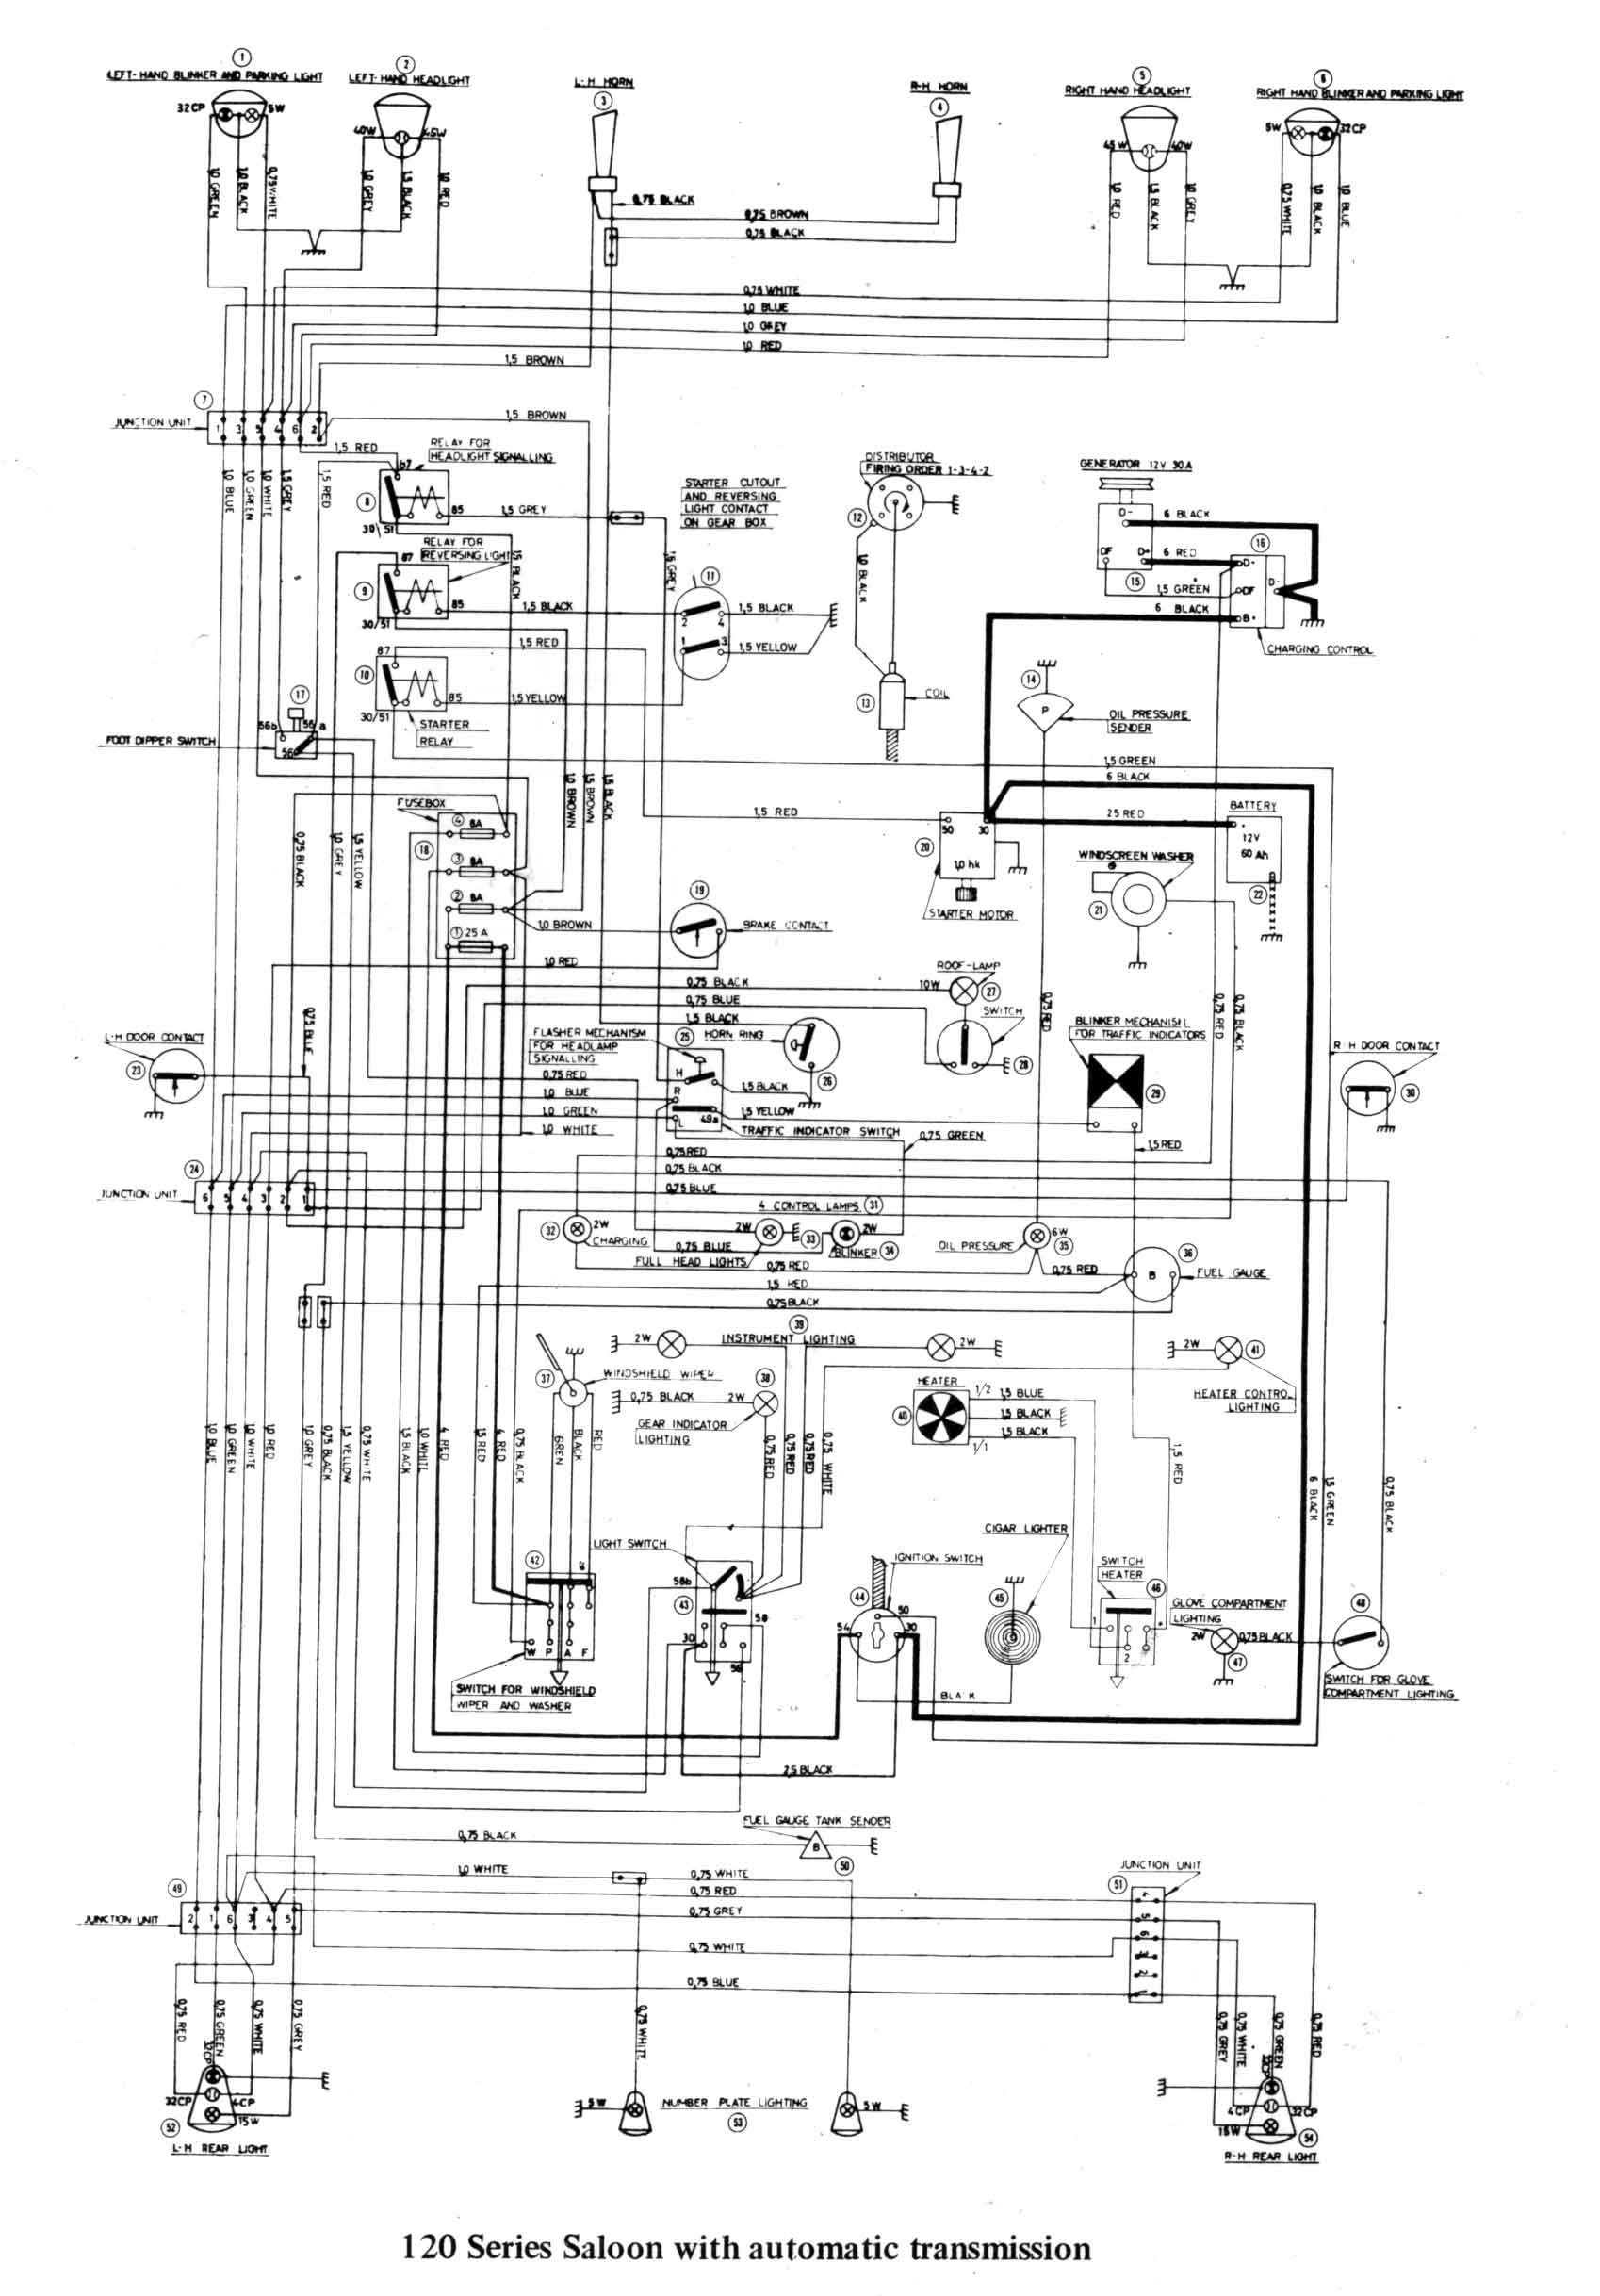 Continuous Duty Solenoid Wiring Diagram Inspirational Awesome Sw Em Od Retrofitting A Vintage Volvo